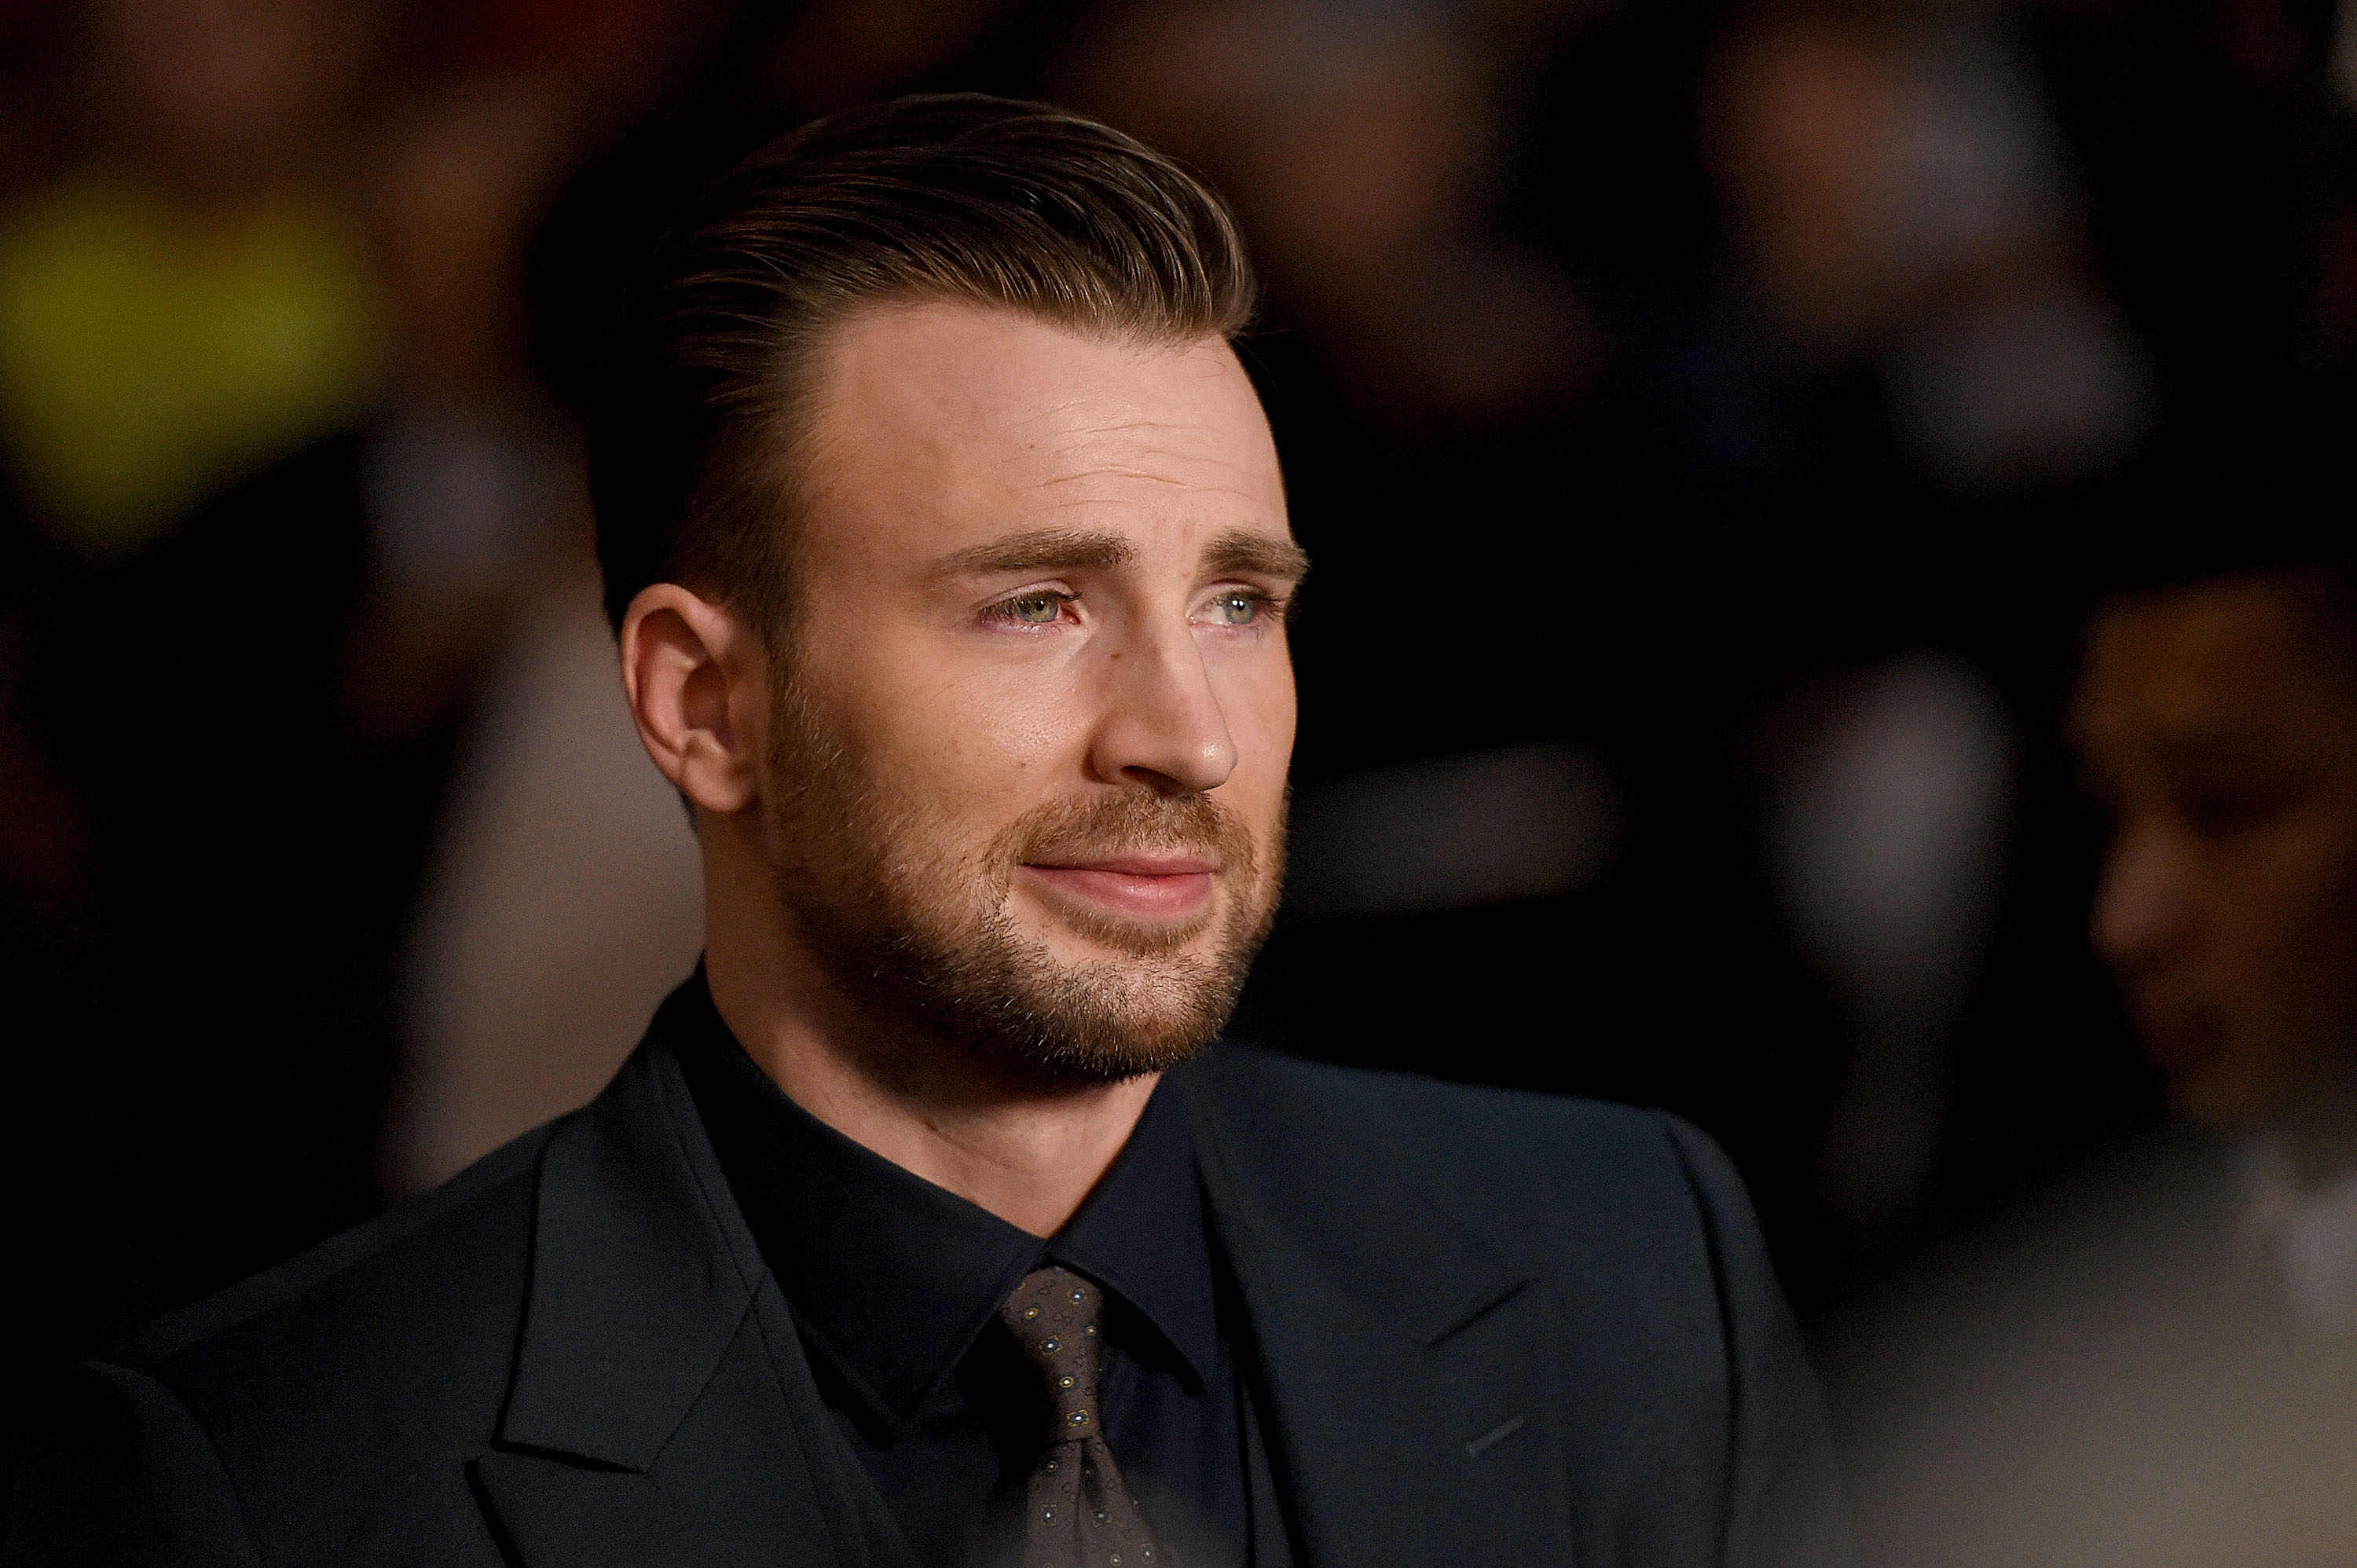 Chris Evans to star in new murder mystery Knives Out after bidding farewell to Captain America